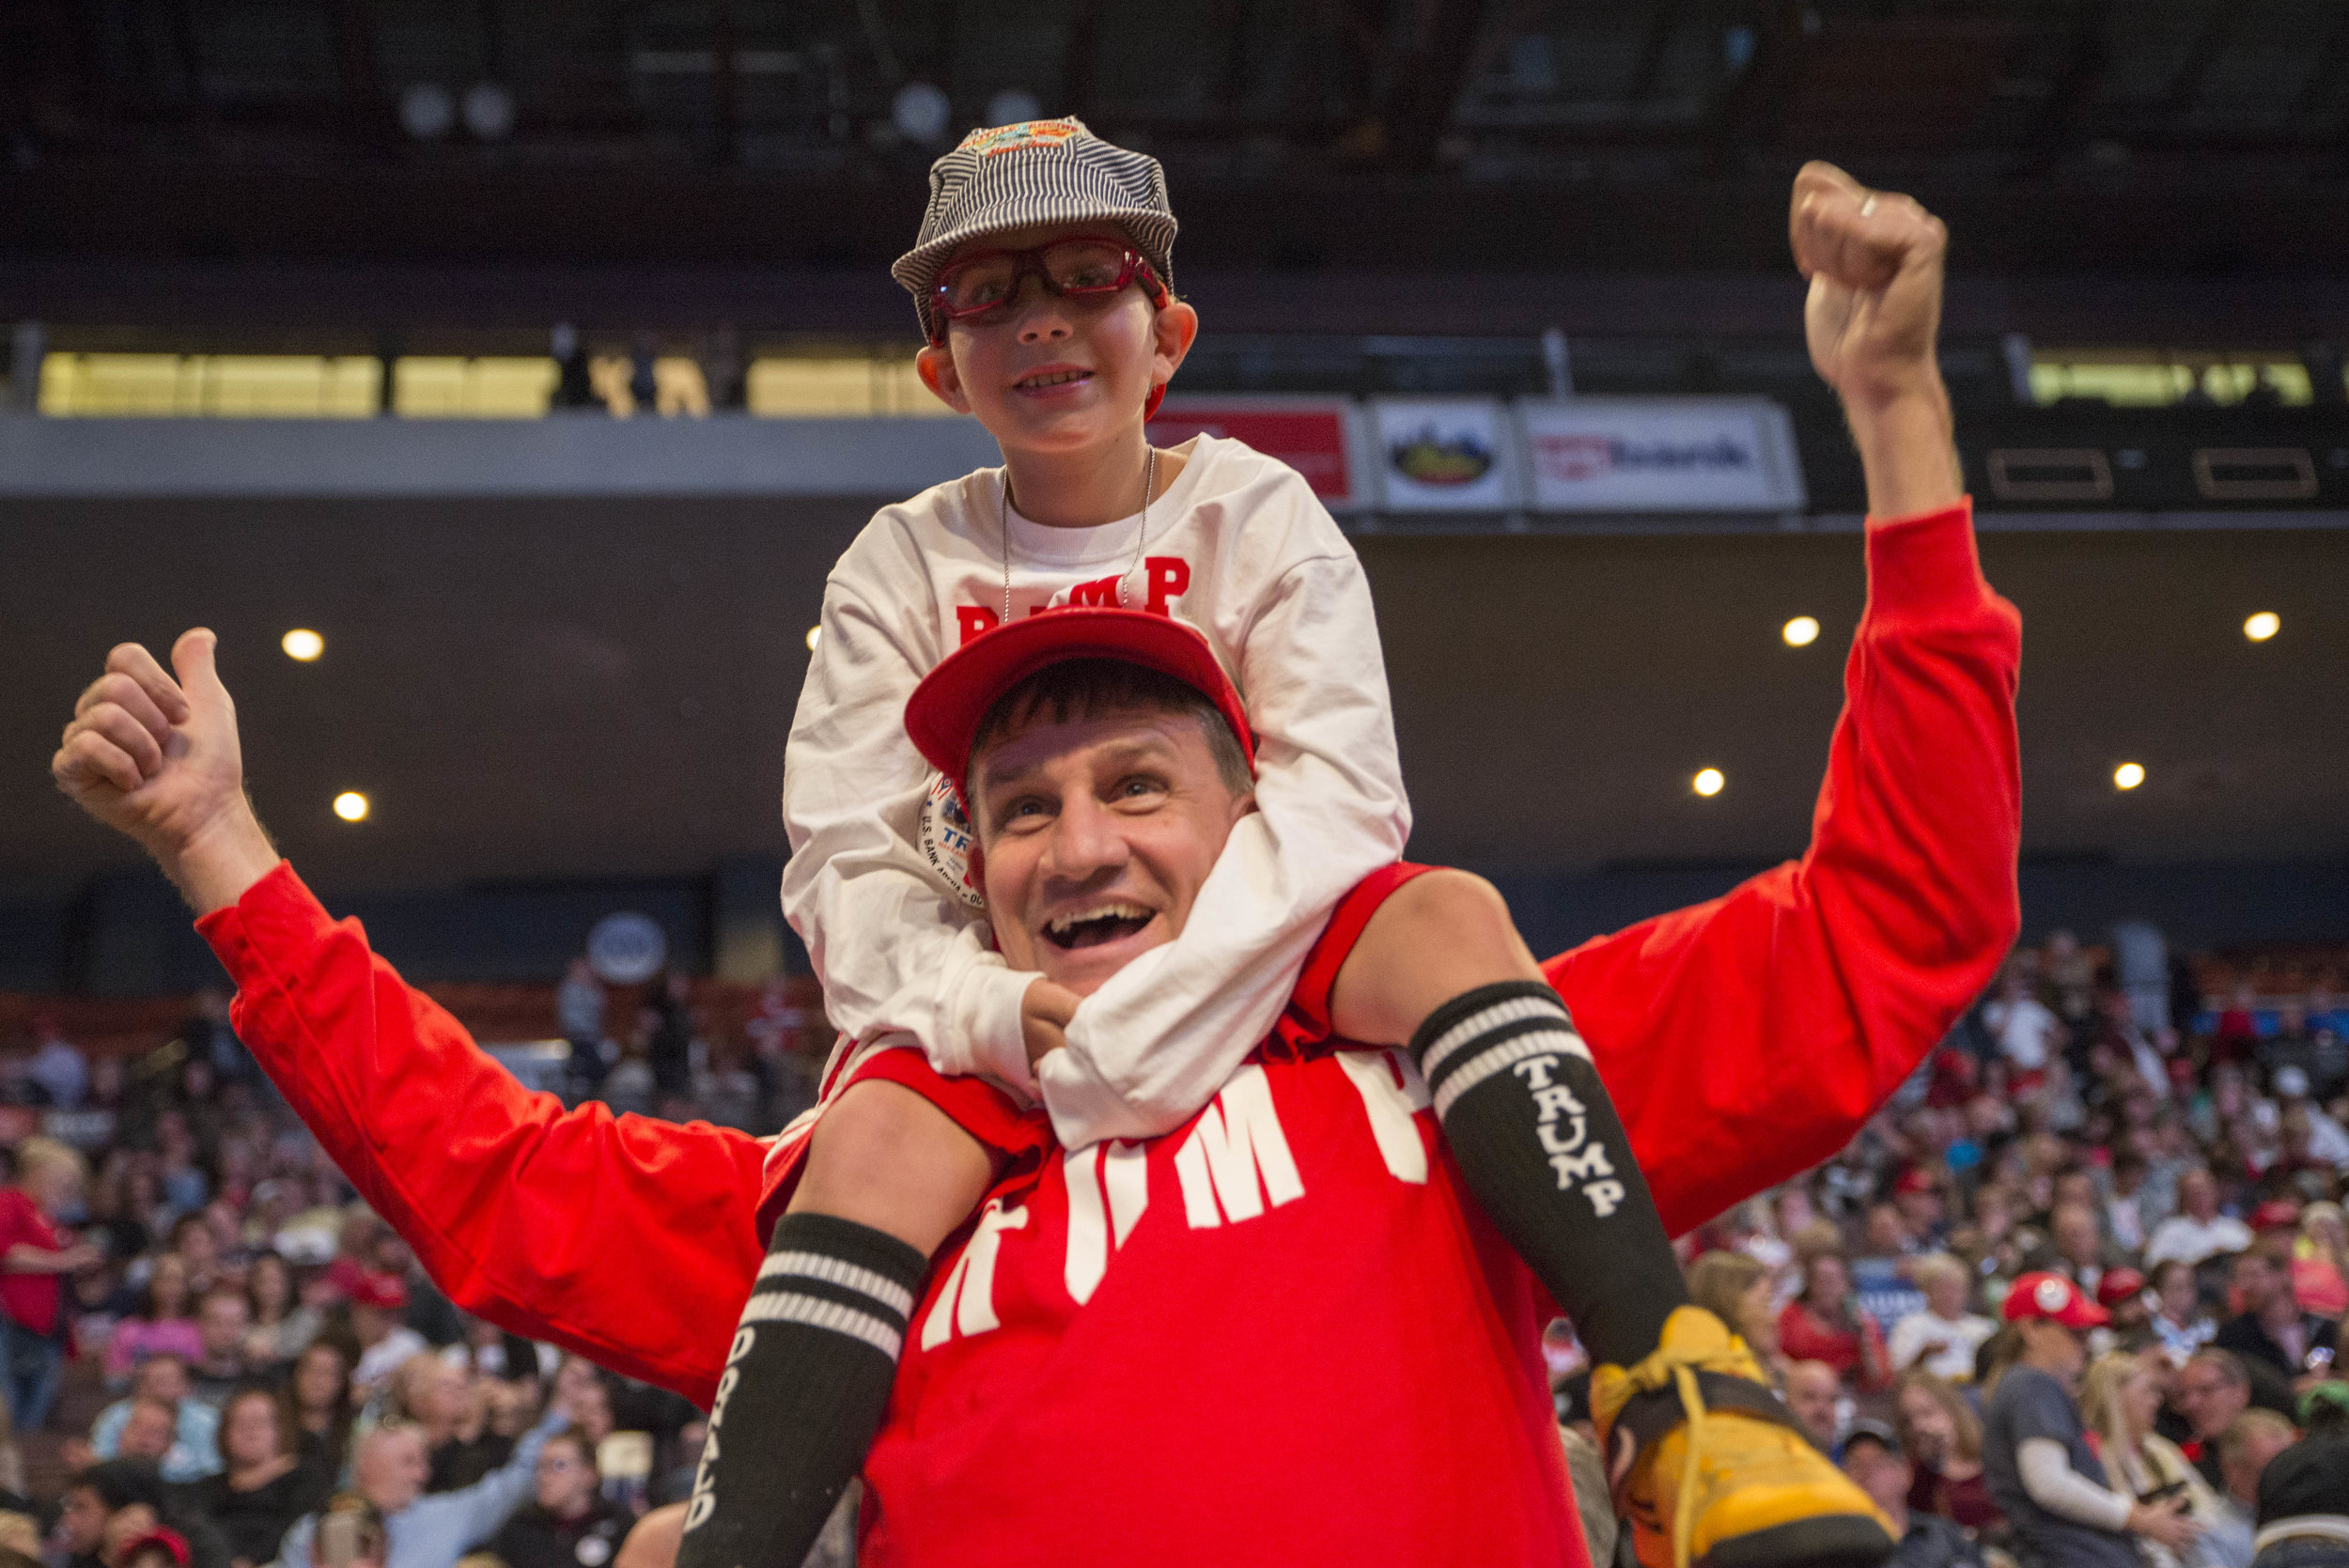 Fred and his son, Charlie Caldwell express their excitement at a rally for Republican nominee Donald Trump at US Bank Arena in Cincinnati, Ohio on October 13, 2016.